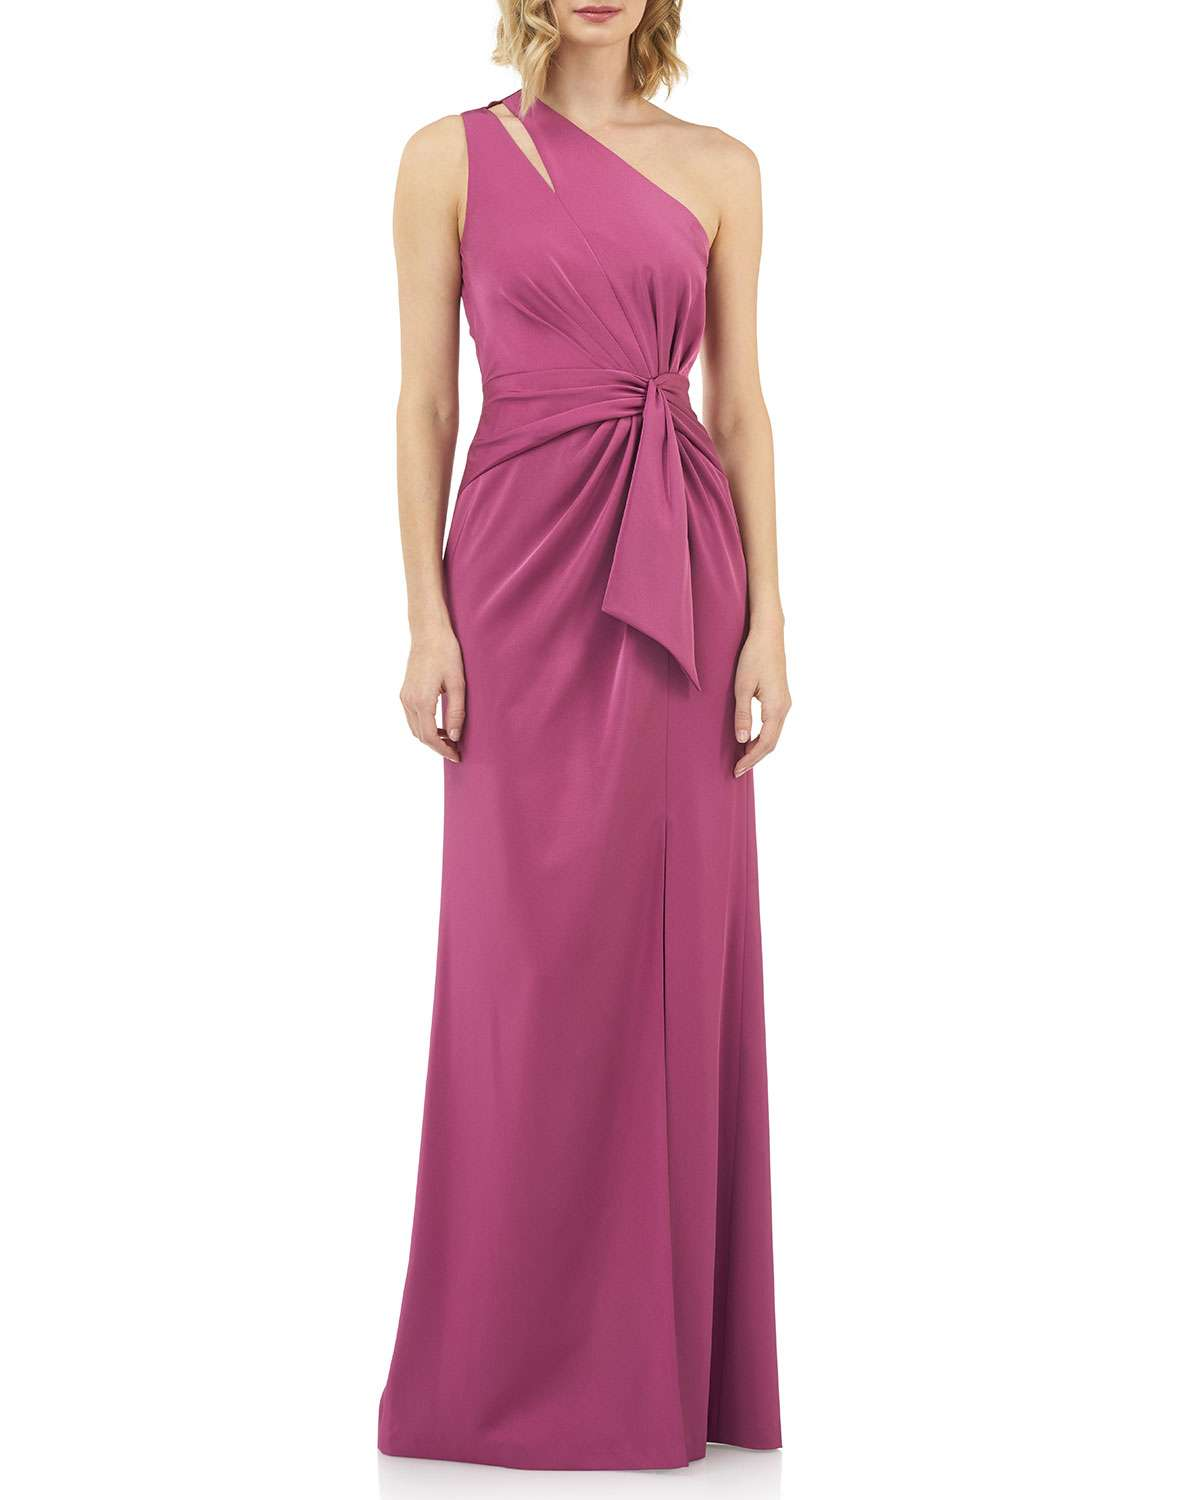 Emma Draped One-Shoulder Stretch Faille Gown w/ Twist Detail